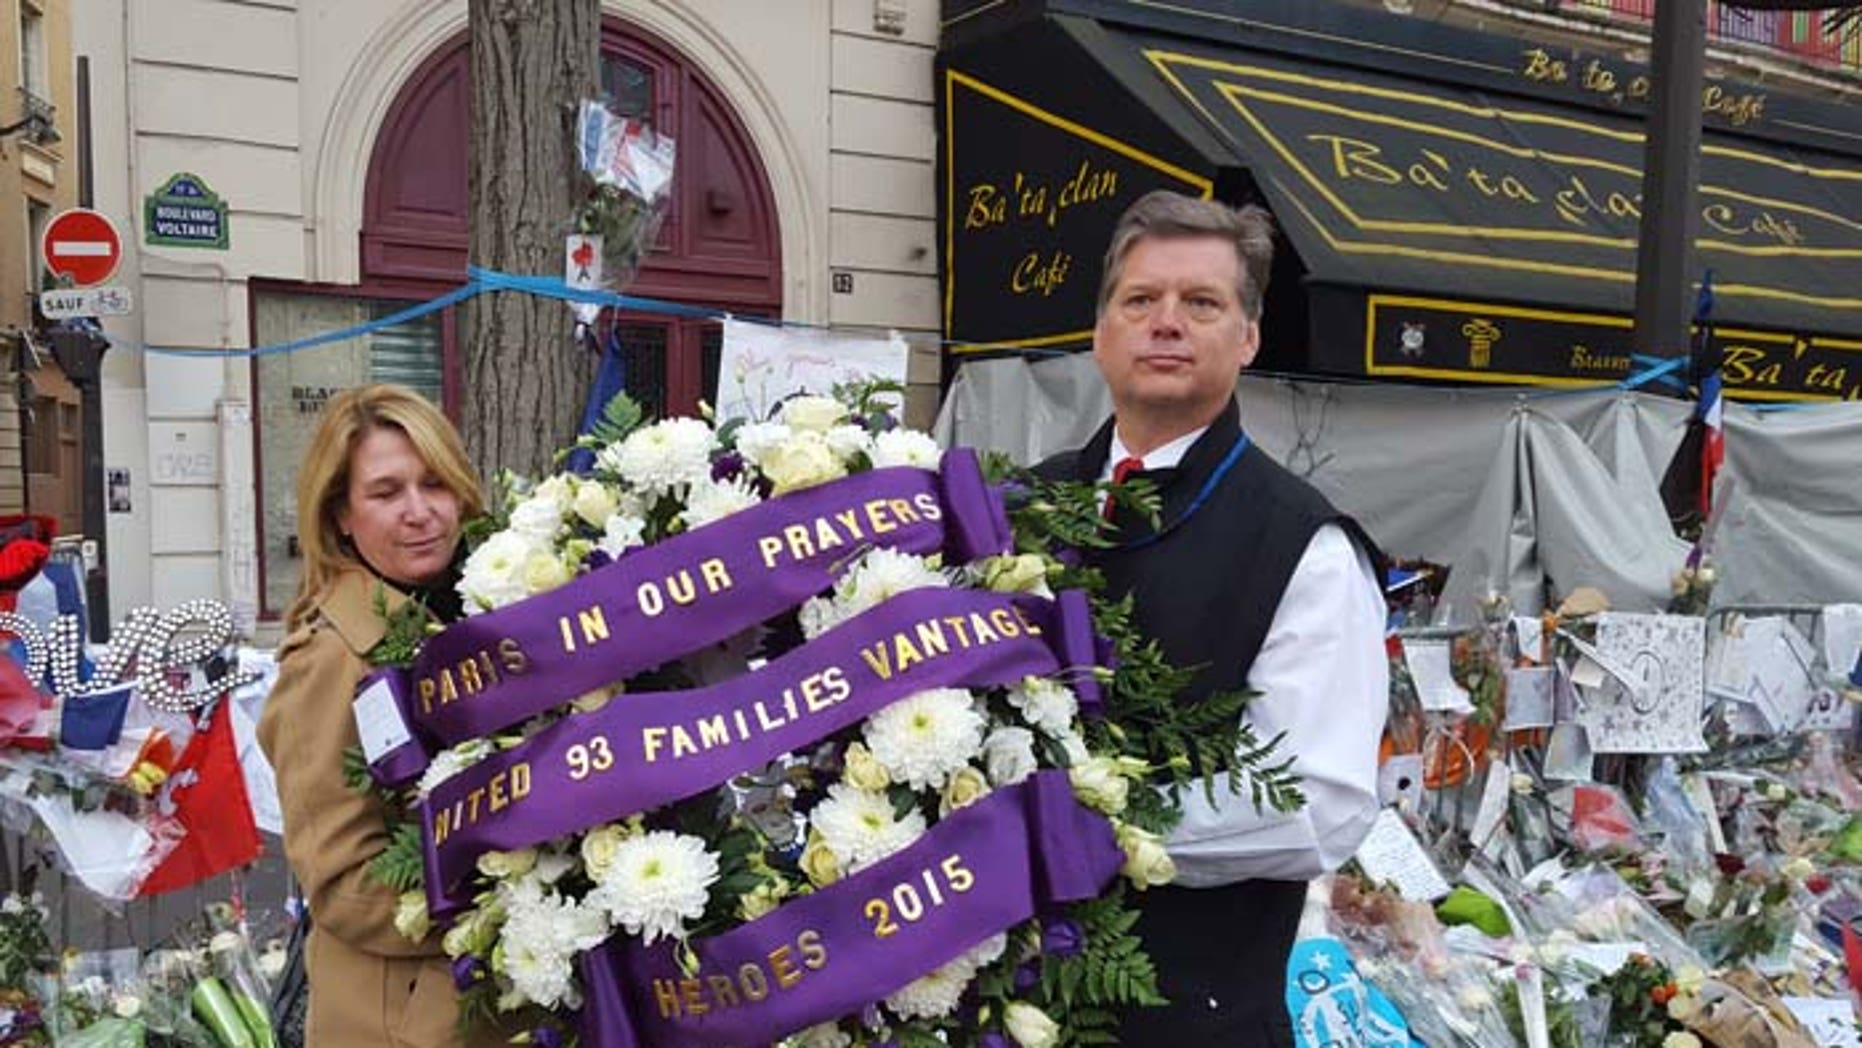 Hamilton Peterson and Patricia Lewis felt a special bond with the families of victims of the terror attacks in Paris. (Casey Sherman)